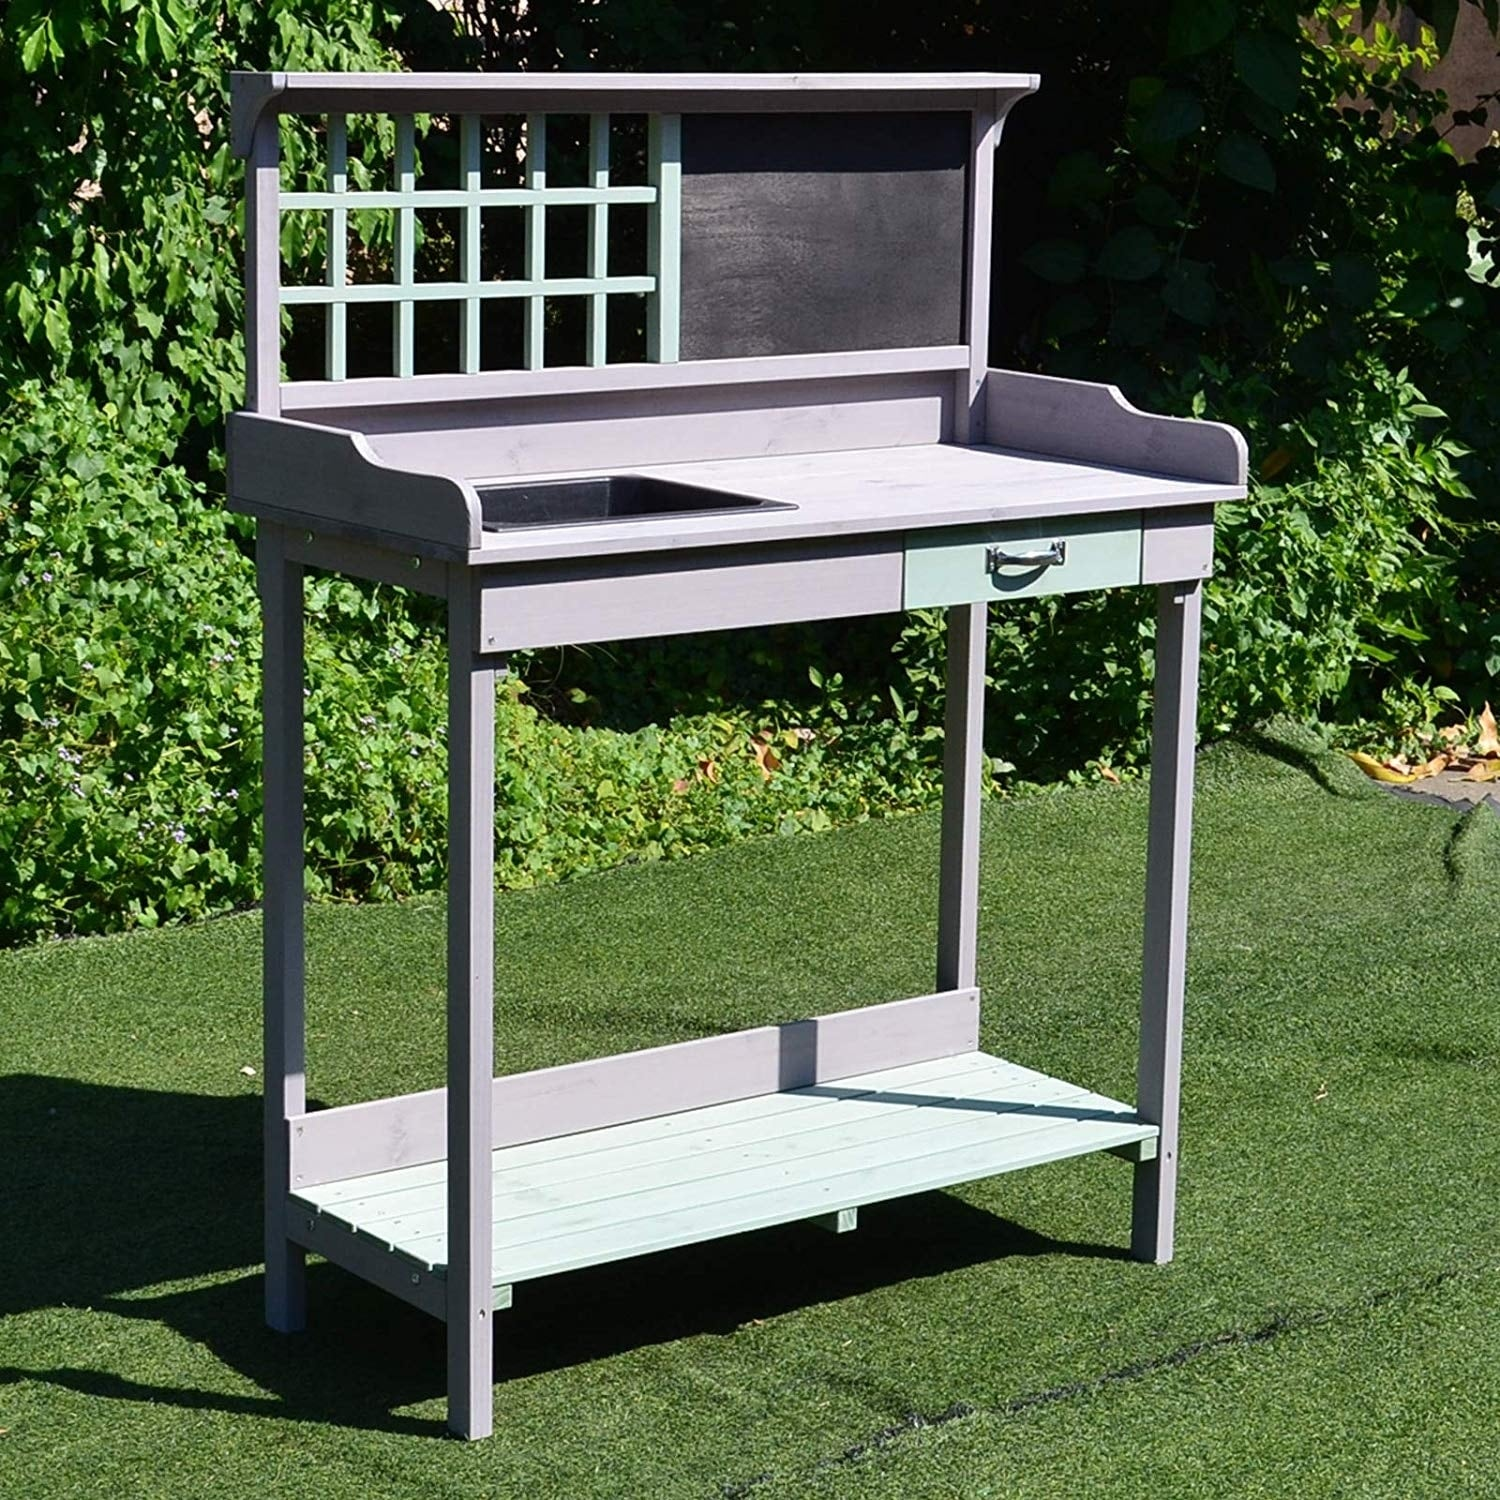 Outsunny Outdoor Rustic Wooden Potting Bench Garden Planting Table